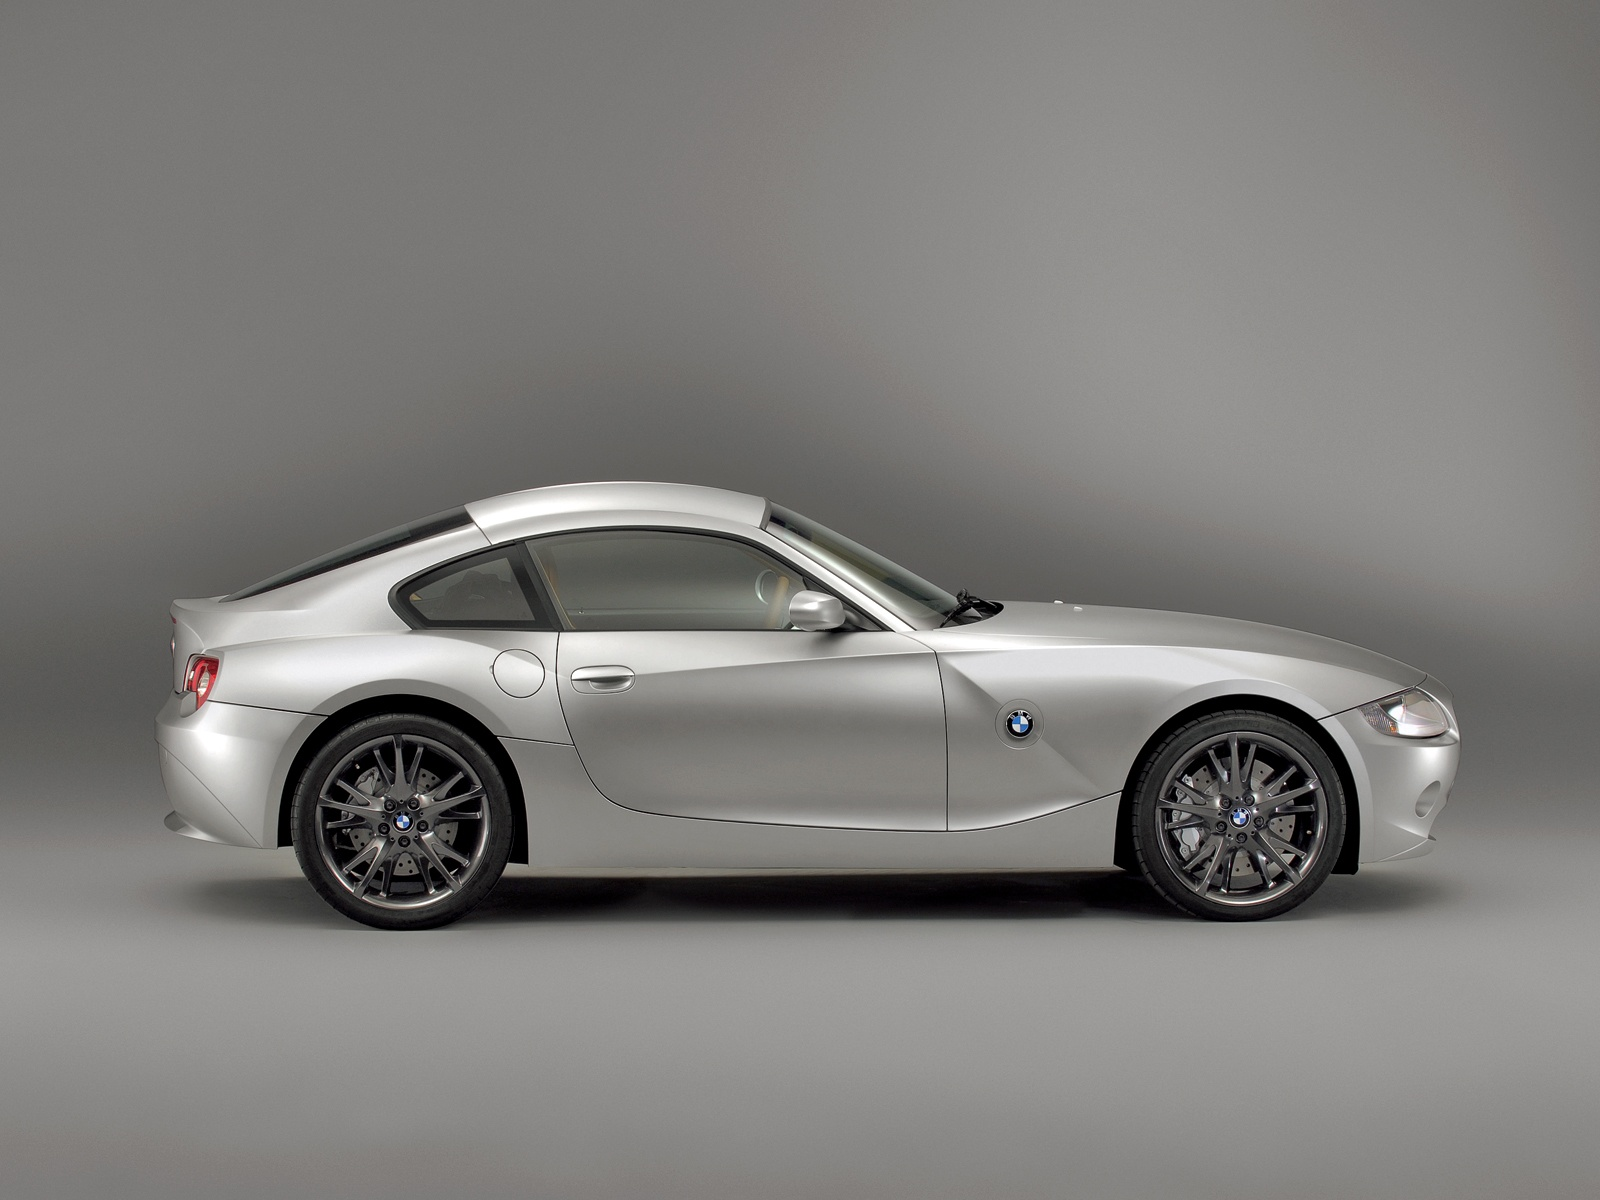 BMW Z4 M Coupe silver wallpaper